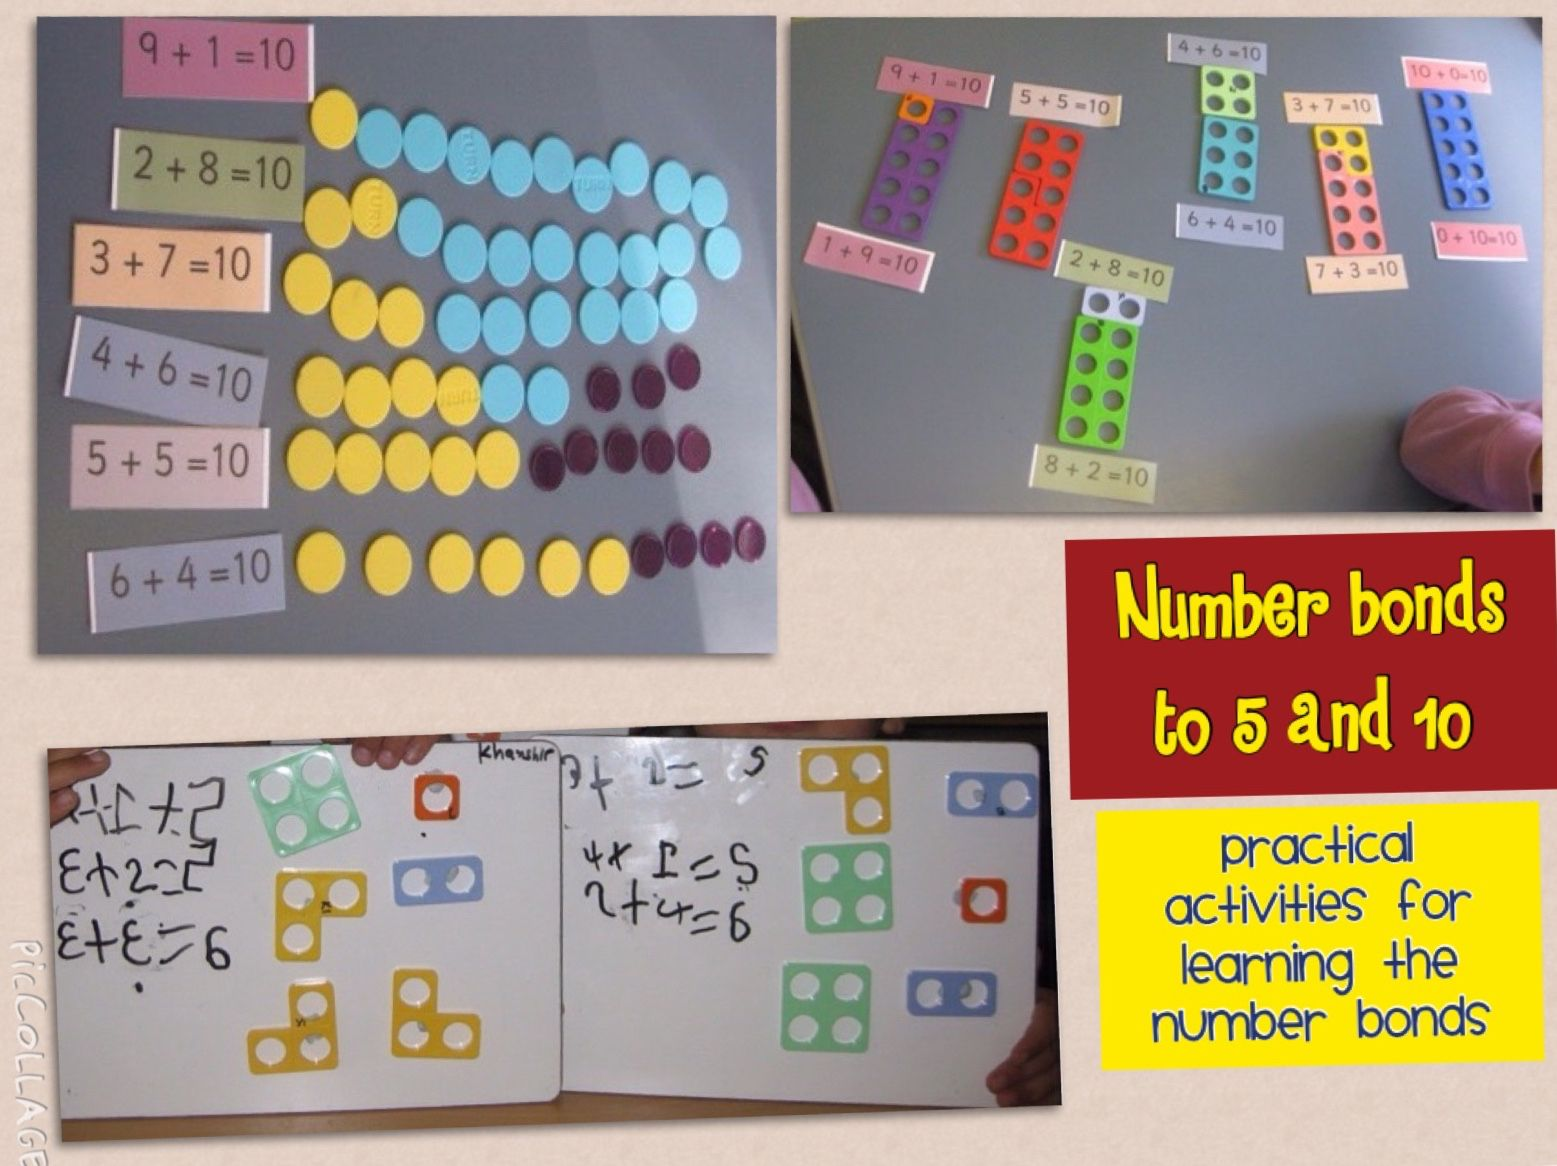 Worksheet Number Bonds To 10 Activities 10 images about number bonds on pinterest math learning to y1